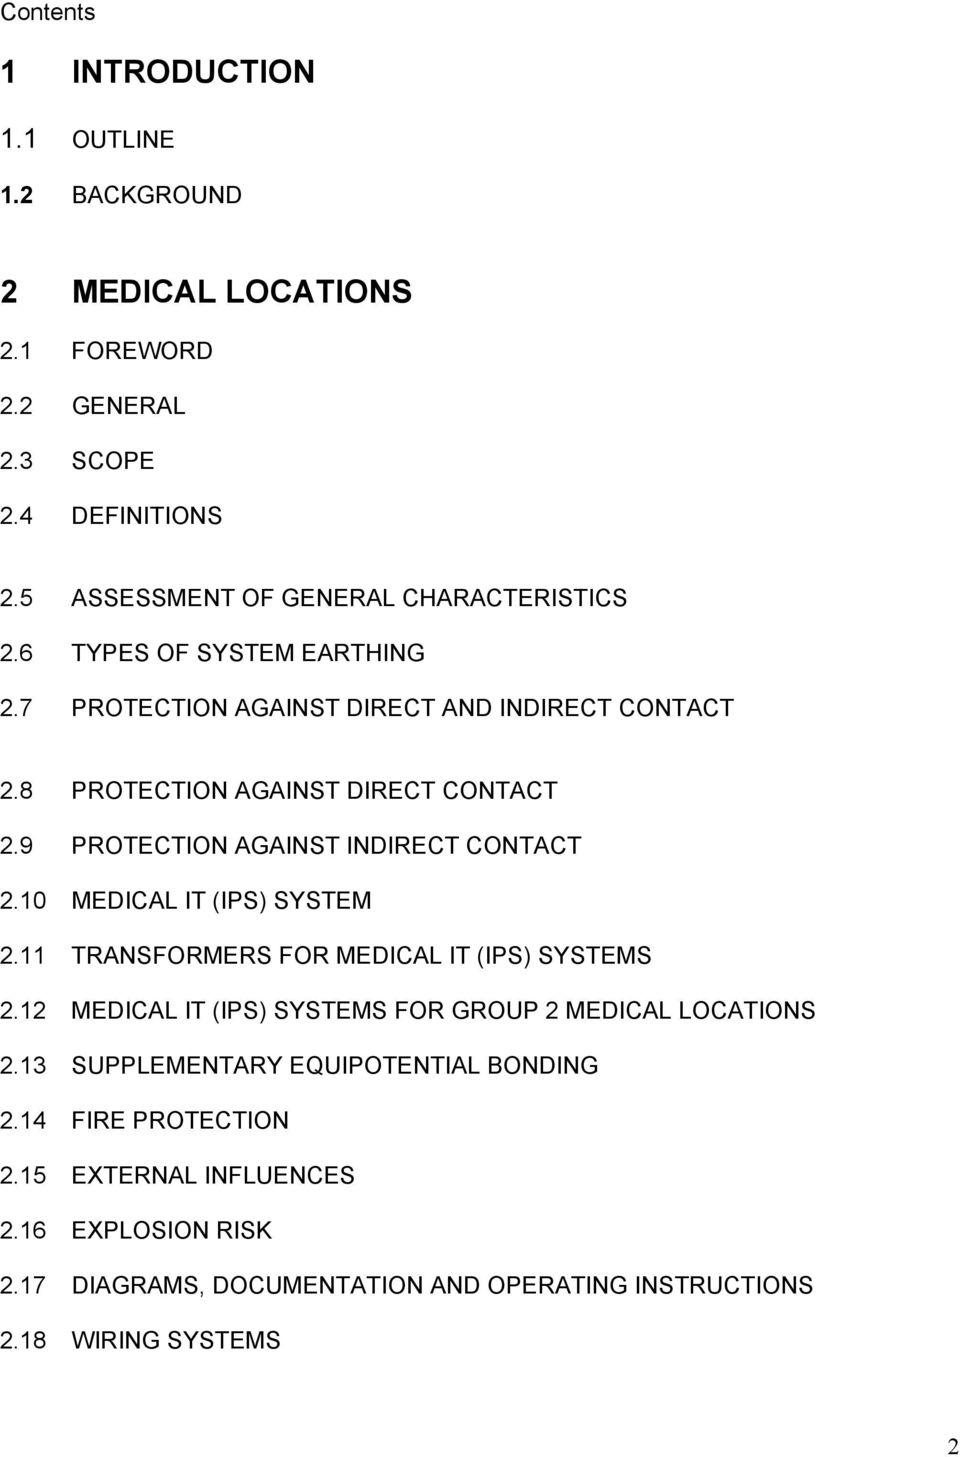 Healthcare Interpretation Of Iee Guidance Note 7 Chapter 10 And Wiring Regulations 17th Edition Amendment 2 9 Protection Against Indirect Contact 210 Medical It Ips System 211 Transformers For